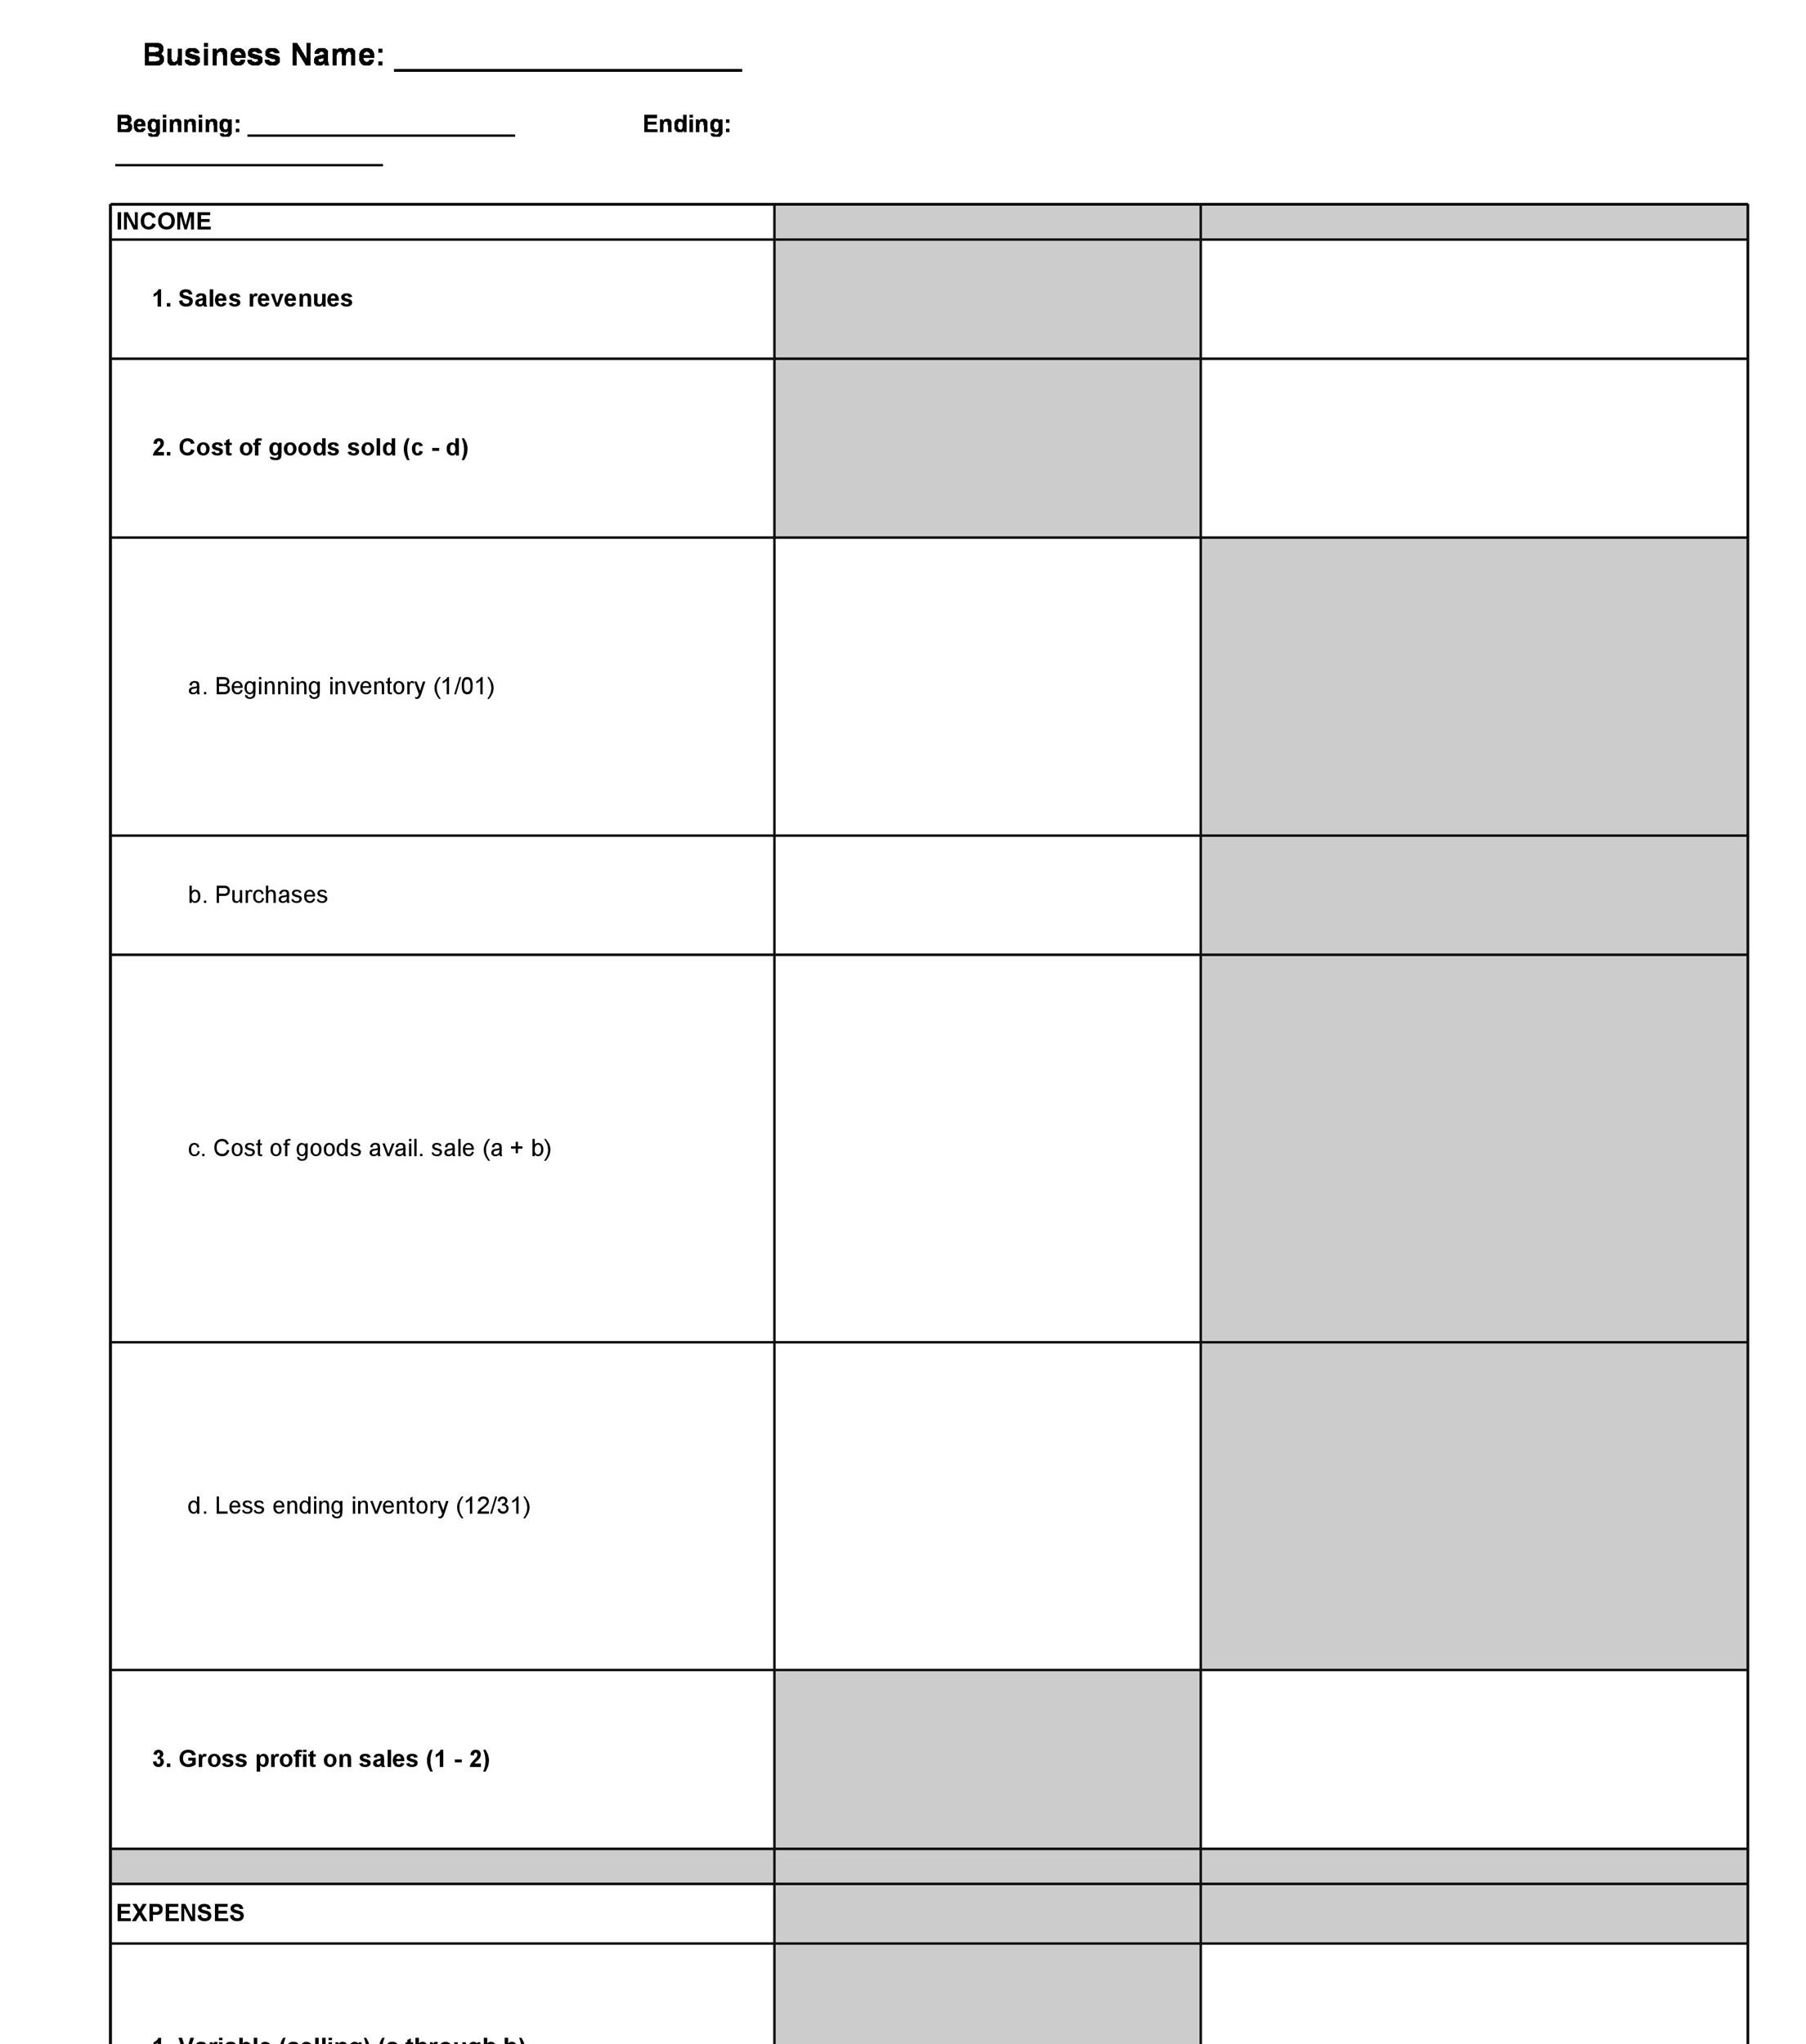 Profit And Loss Statement Form Free 35 Profit And Loss Statement Templates & Forms